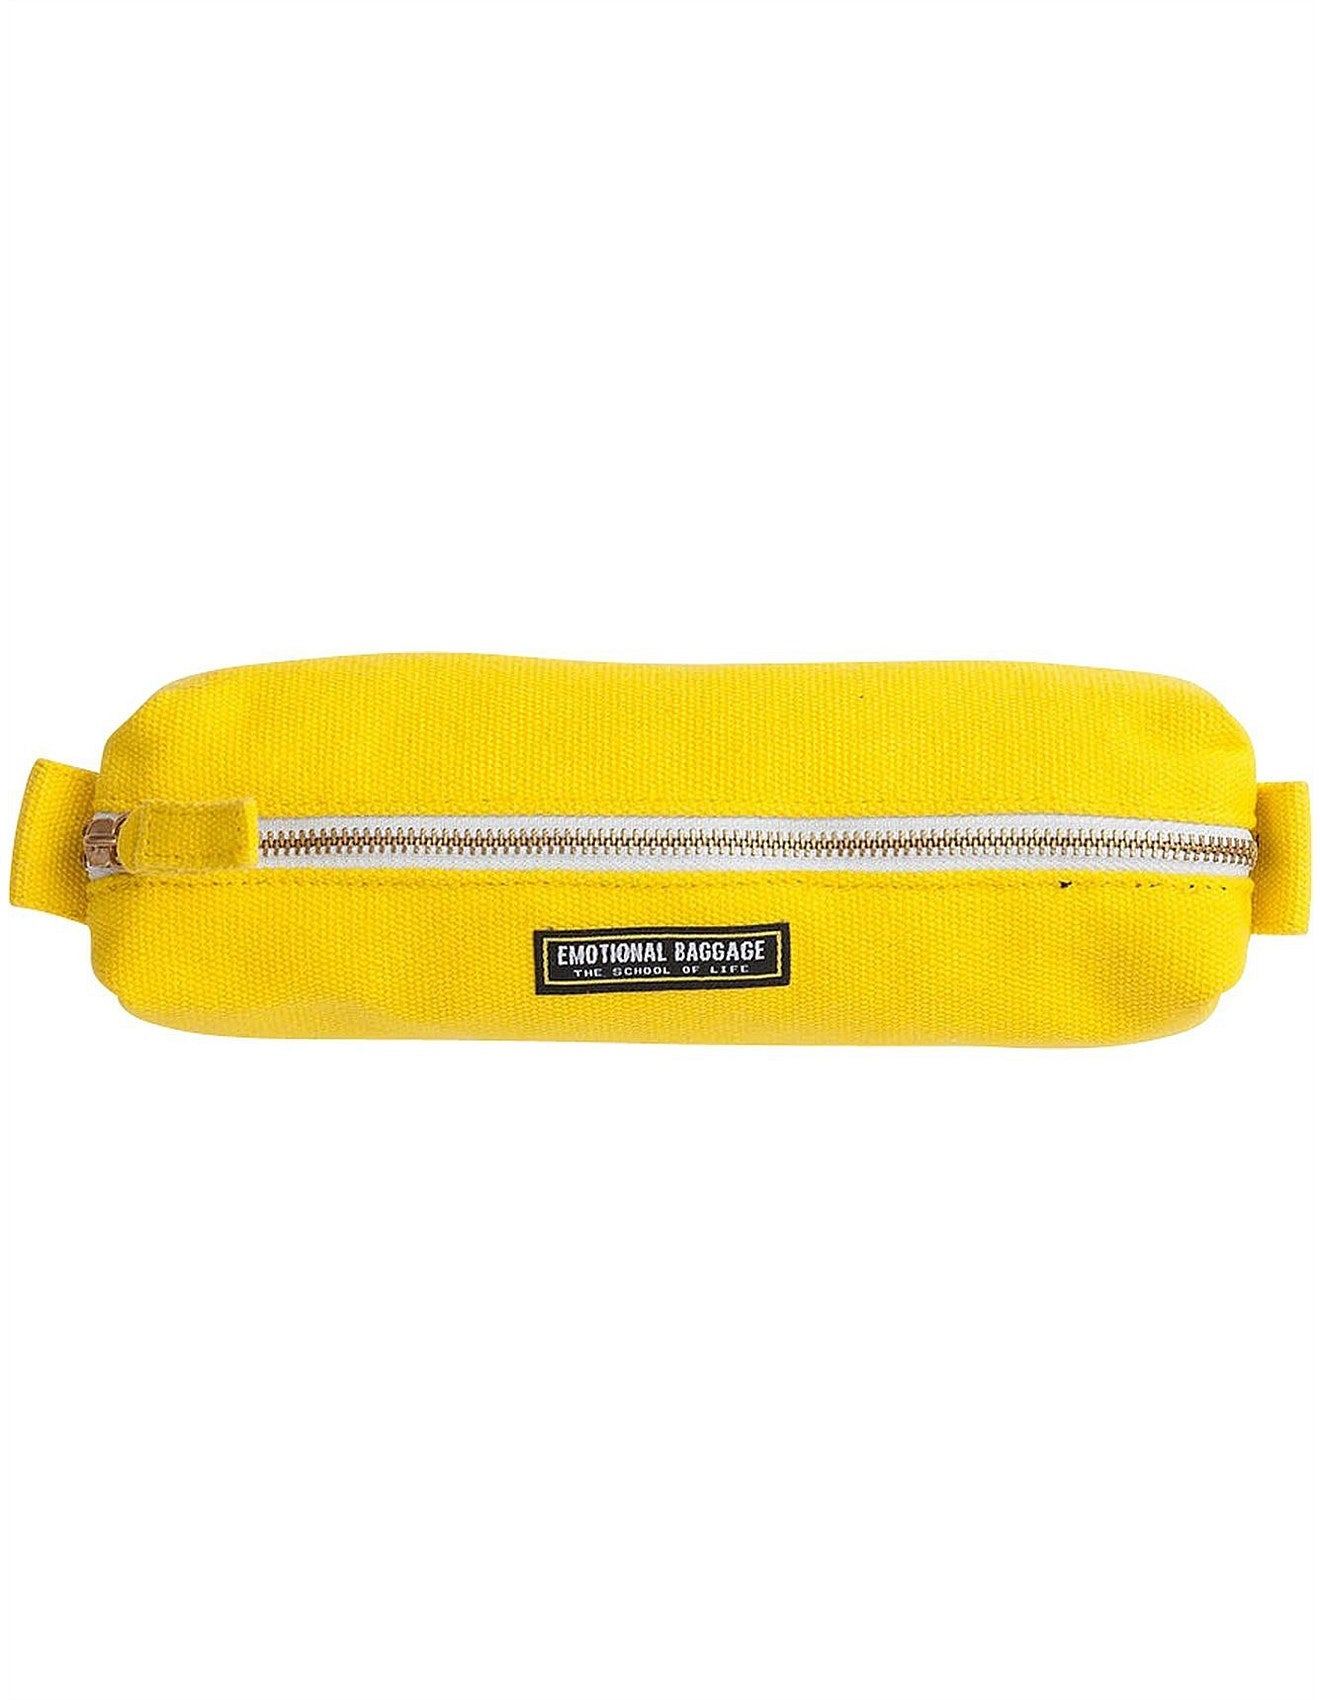 Emotional Baggage Yellow Pencil Case